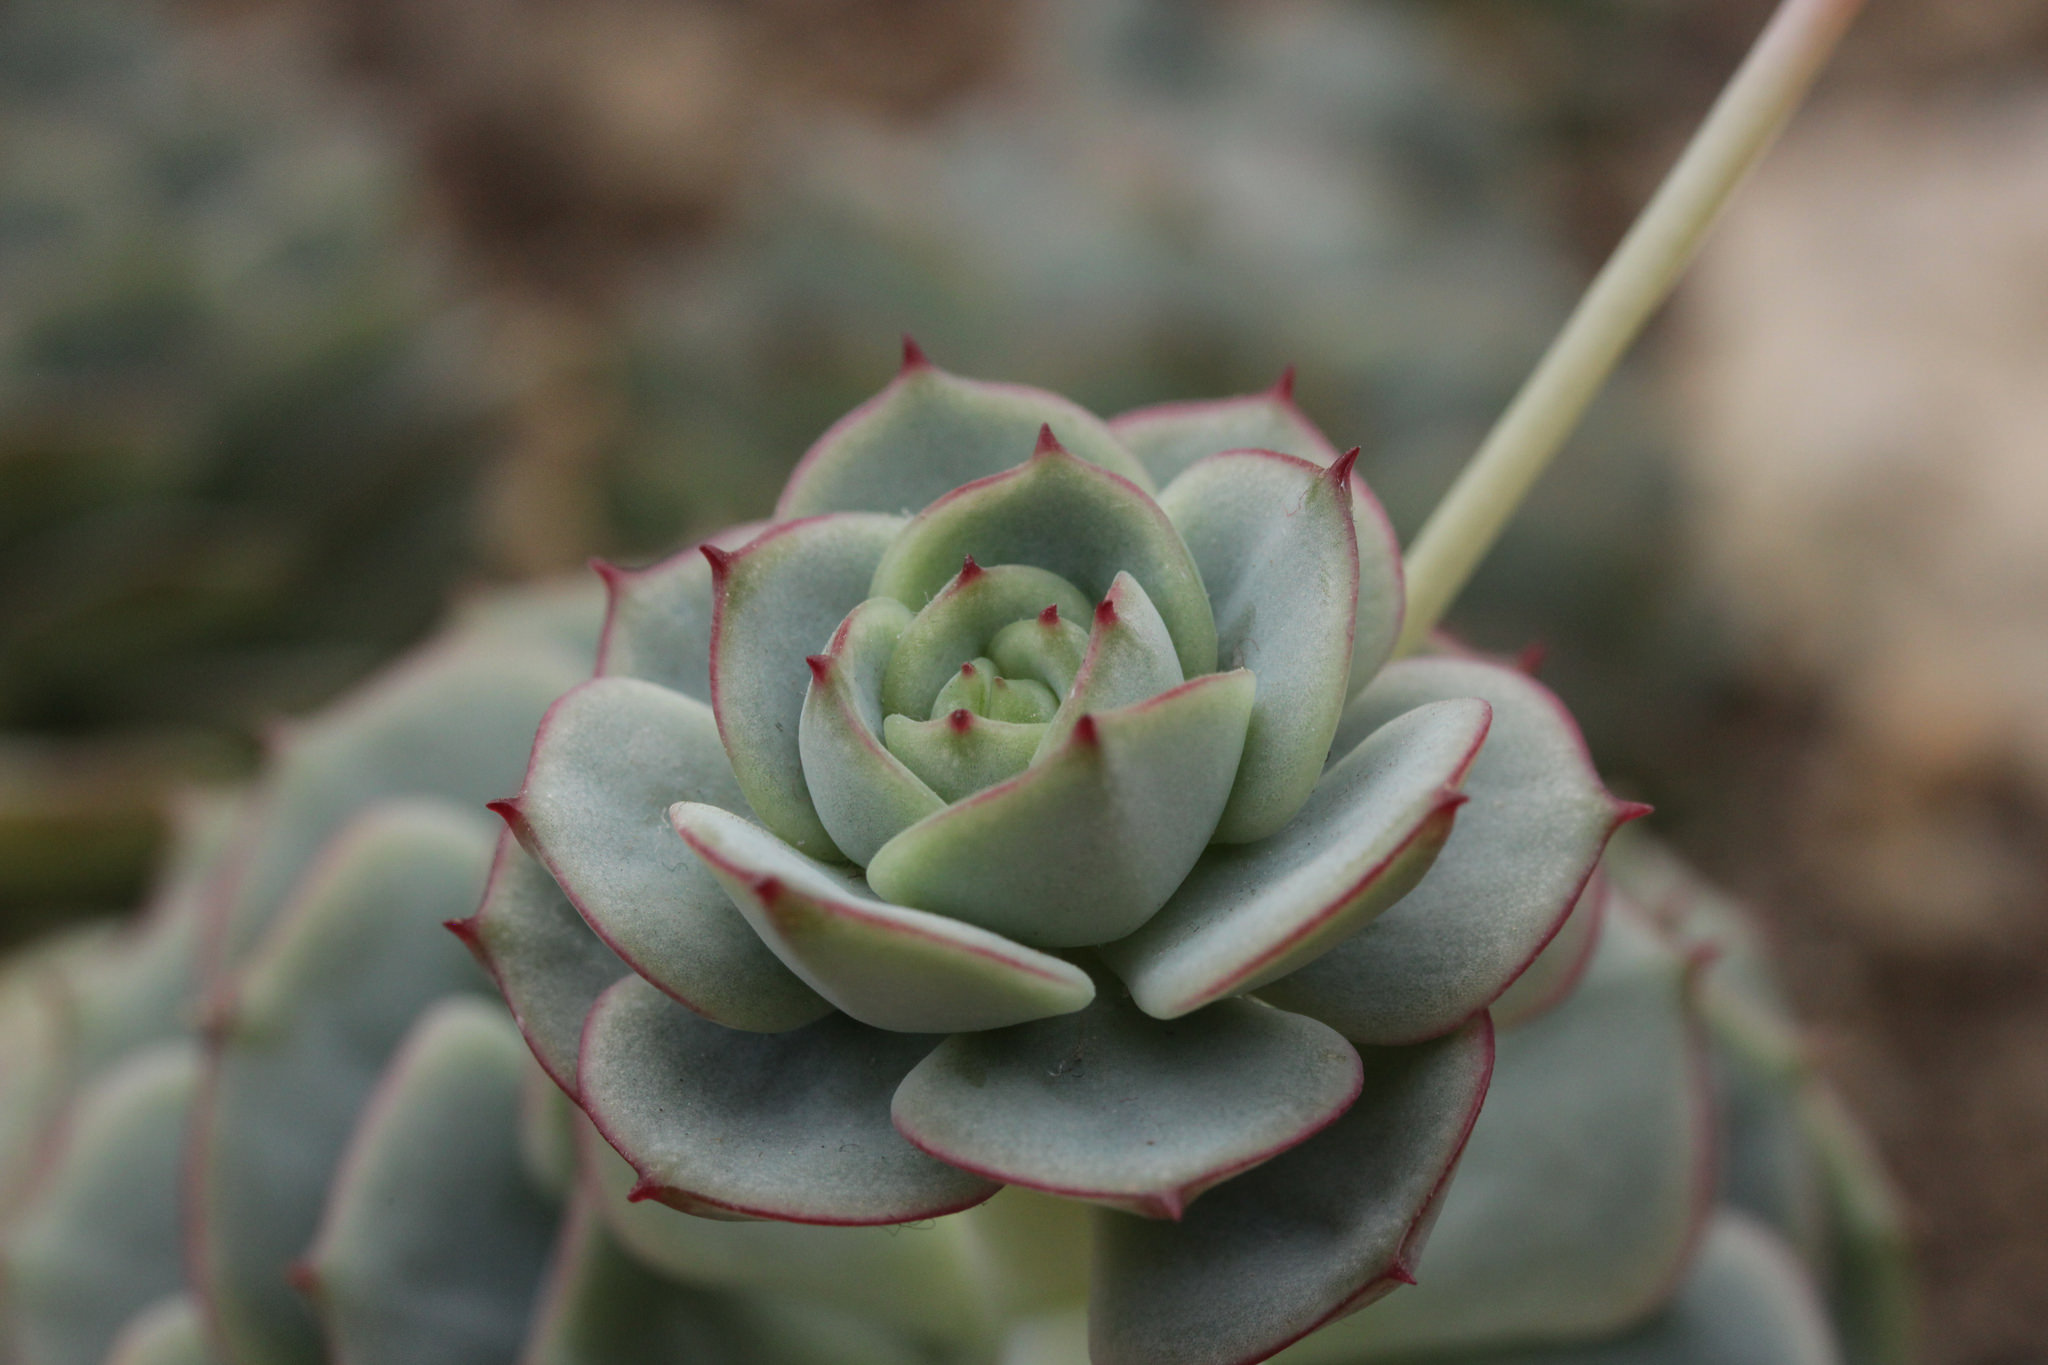 Painted lady echeveria (Echeveria derenbergii); photo courtesy of Flickr cc/Bjorn S.